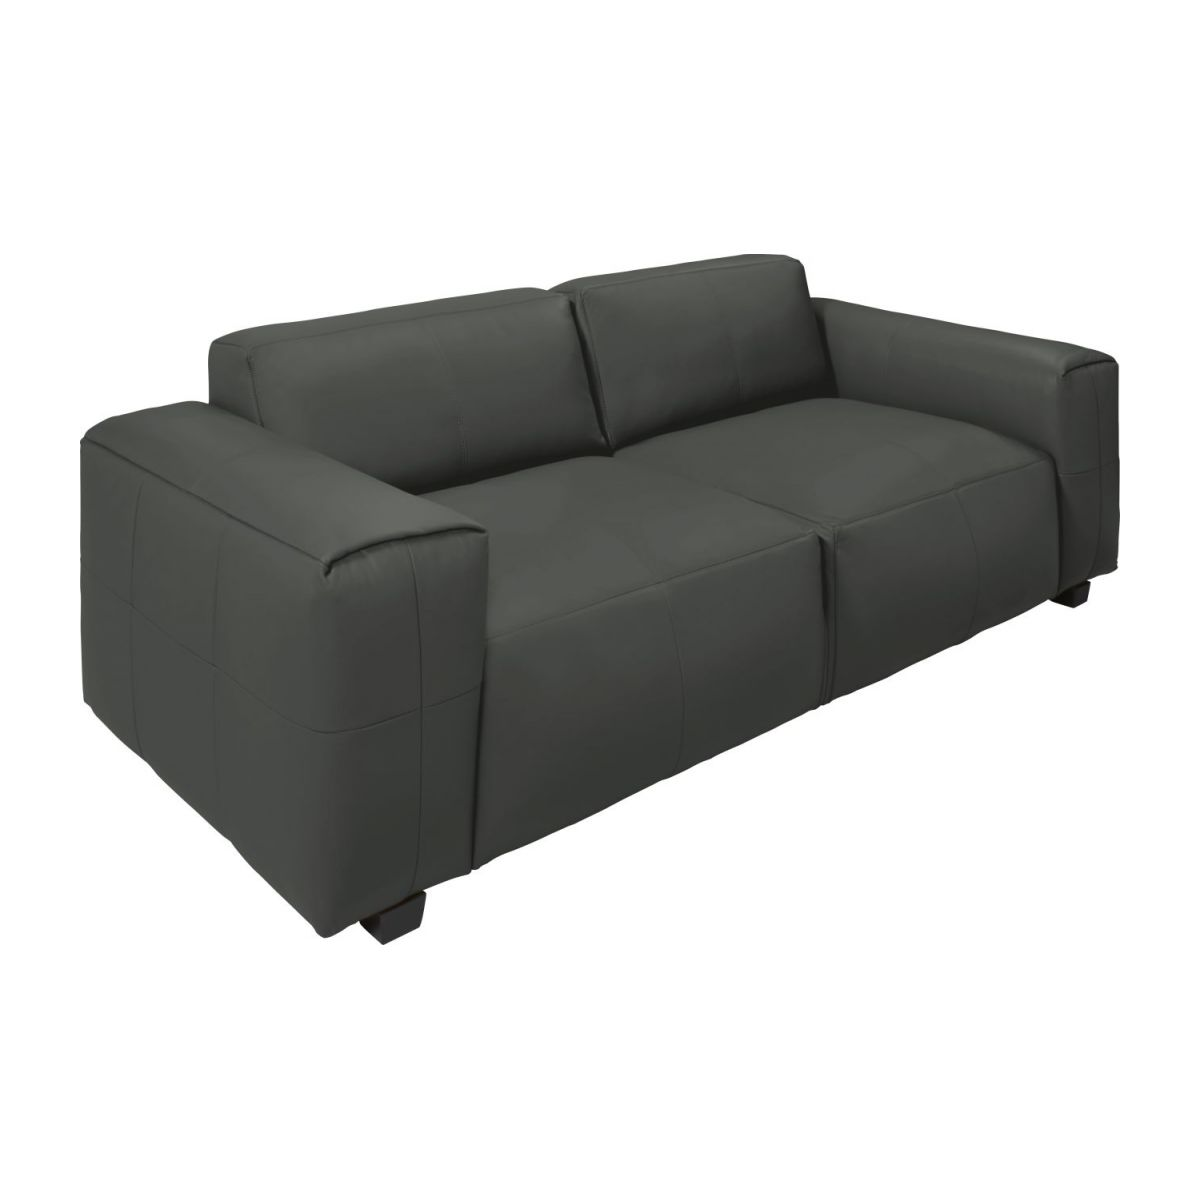 4 seater sofa in Savoy semi-aniline leather, grey n°1